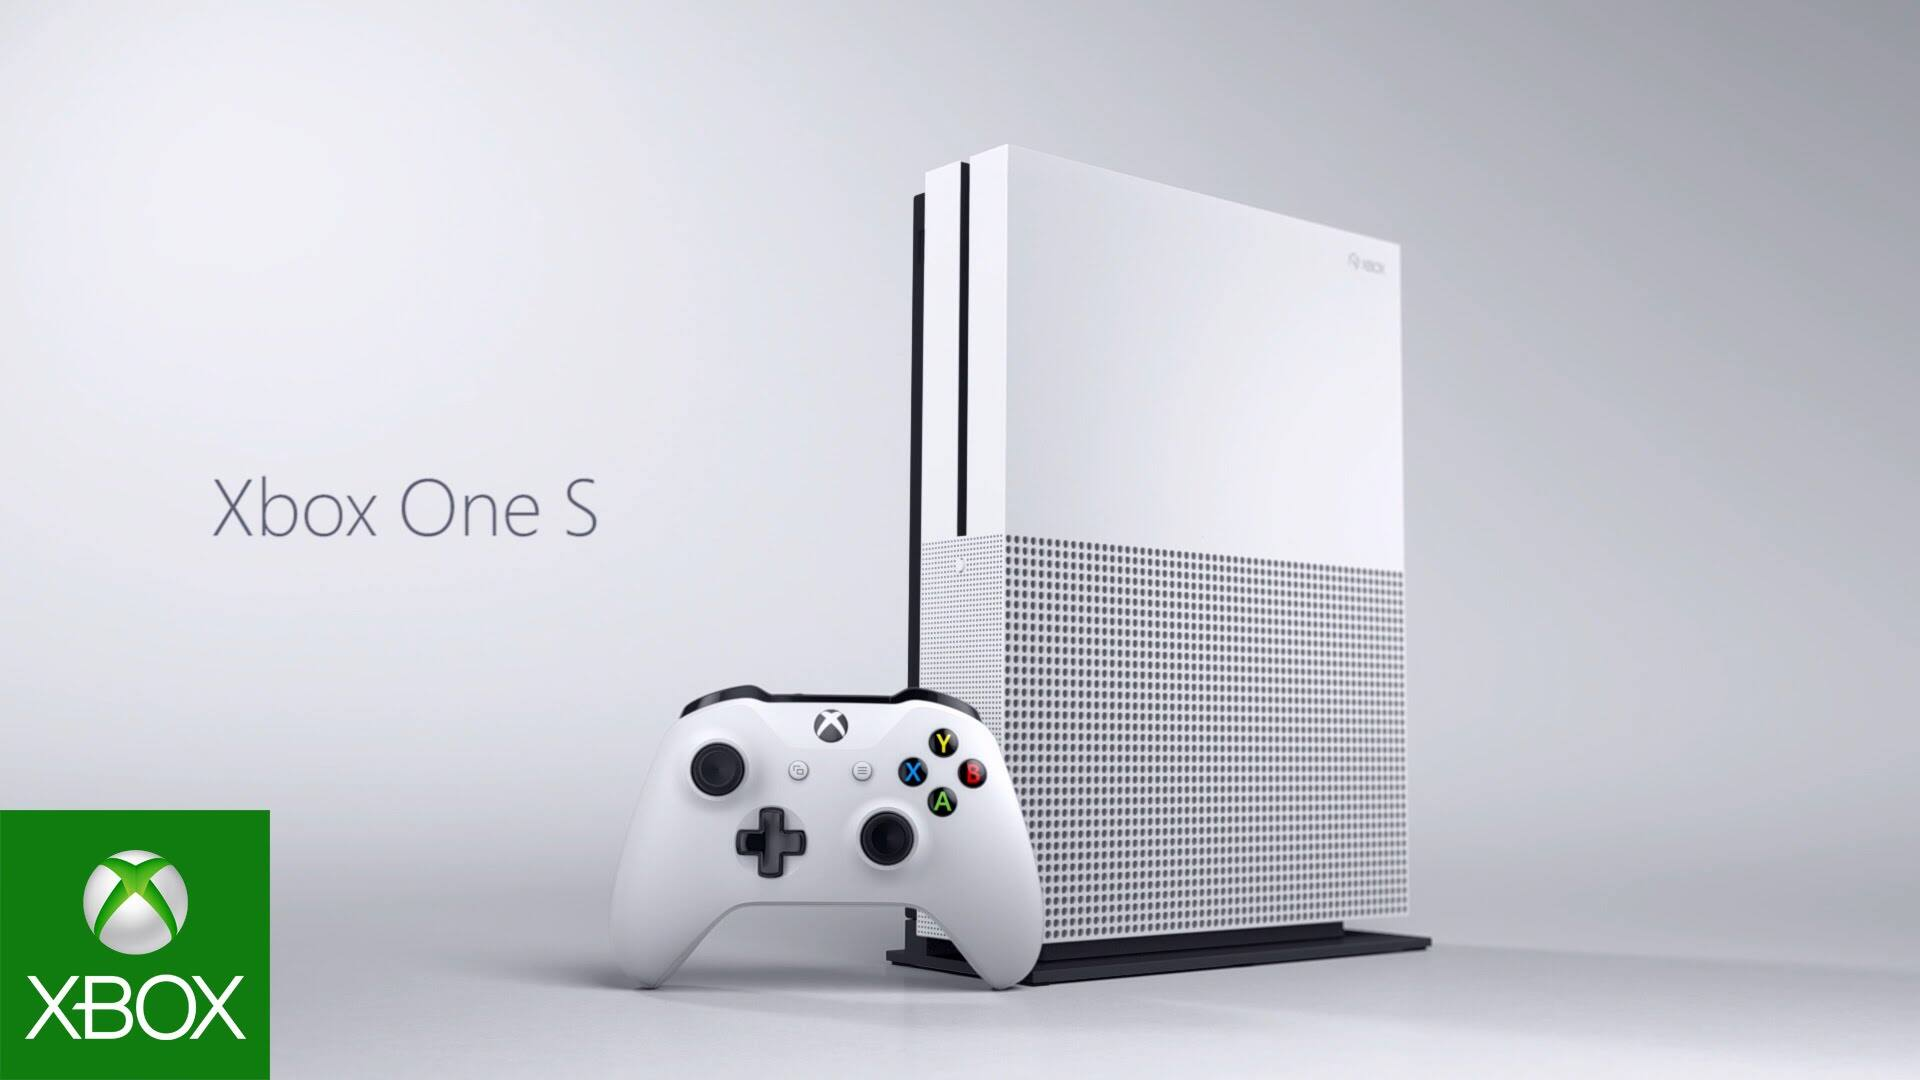 Microsoft Xbox One S 500GB White Game Console + $25 Abt Gift Card + FS + no tax for most* $189 + potential price match (11/27/17 only) at Abt